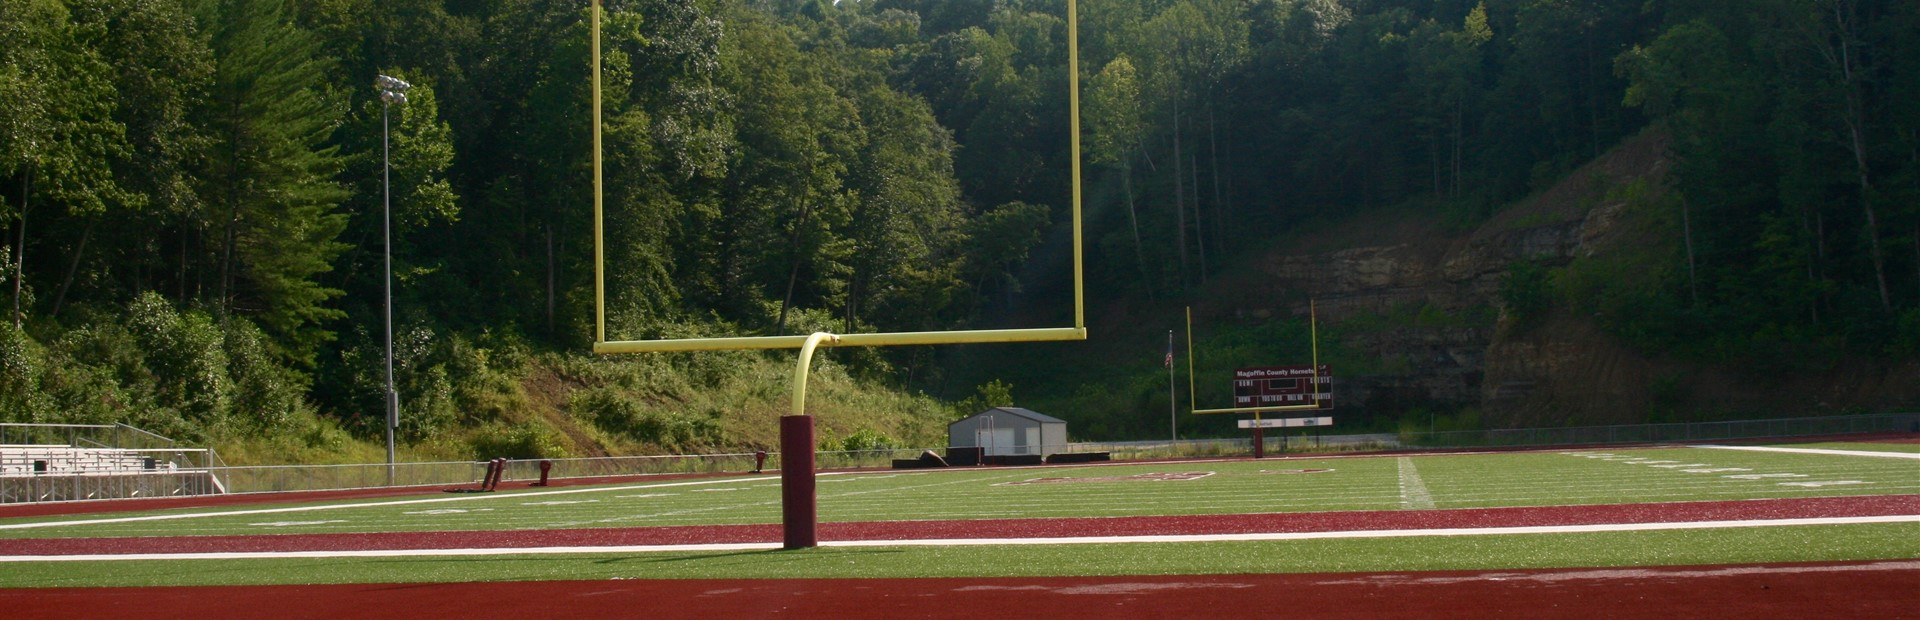 Magoffin County Football Field